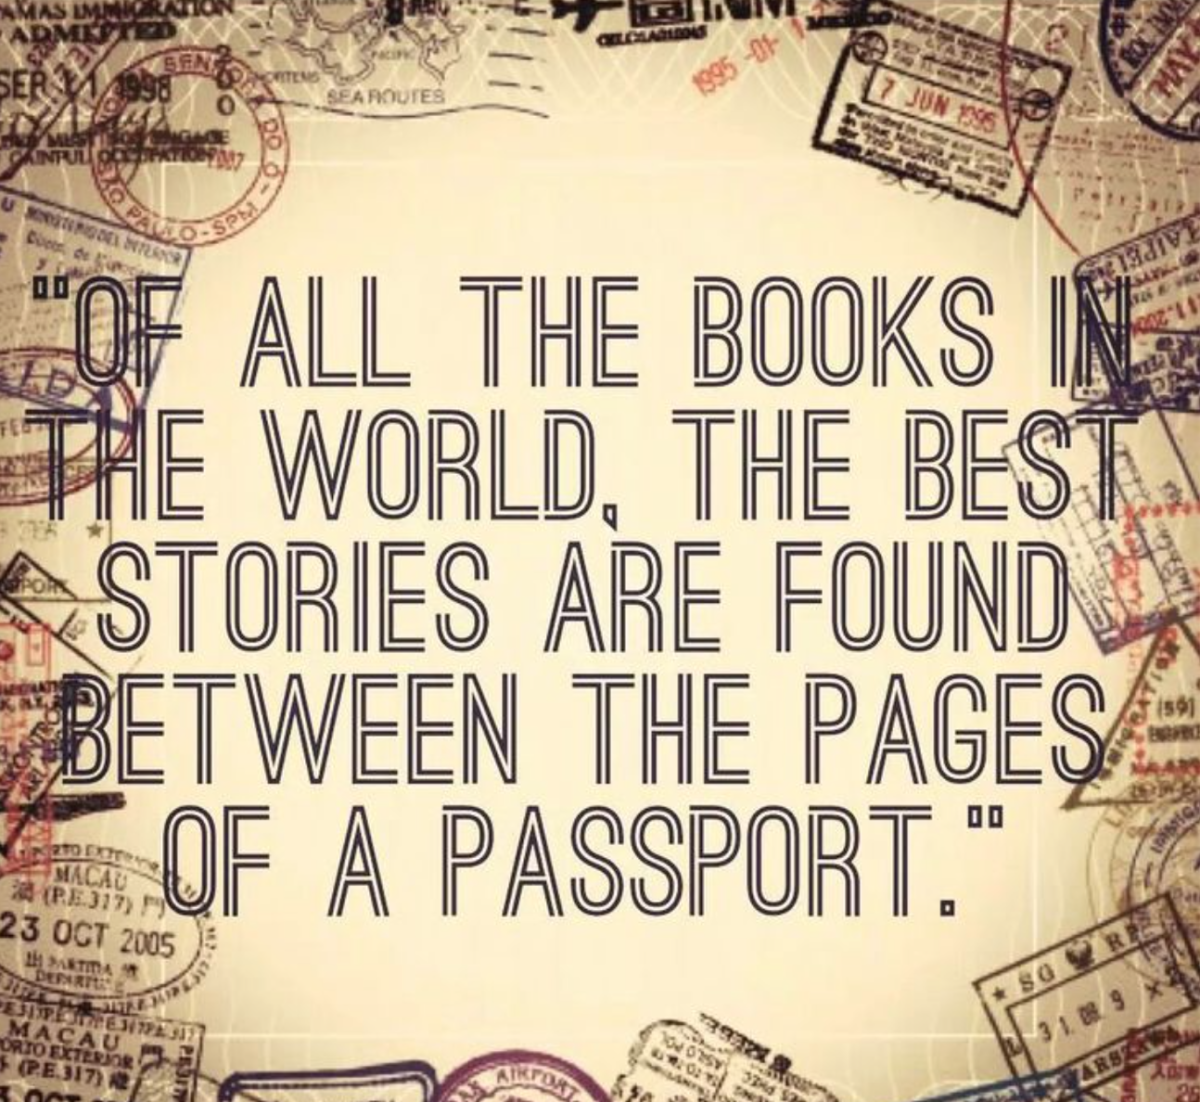 Travel is great for story telling!